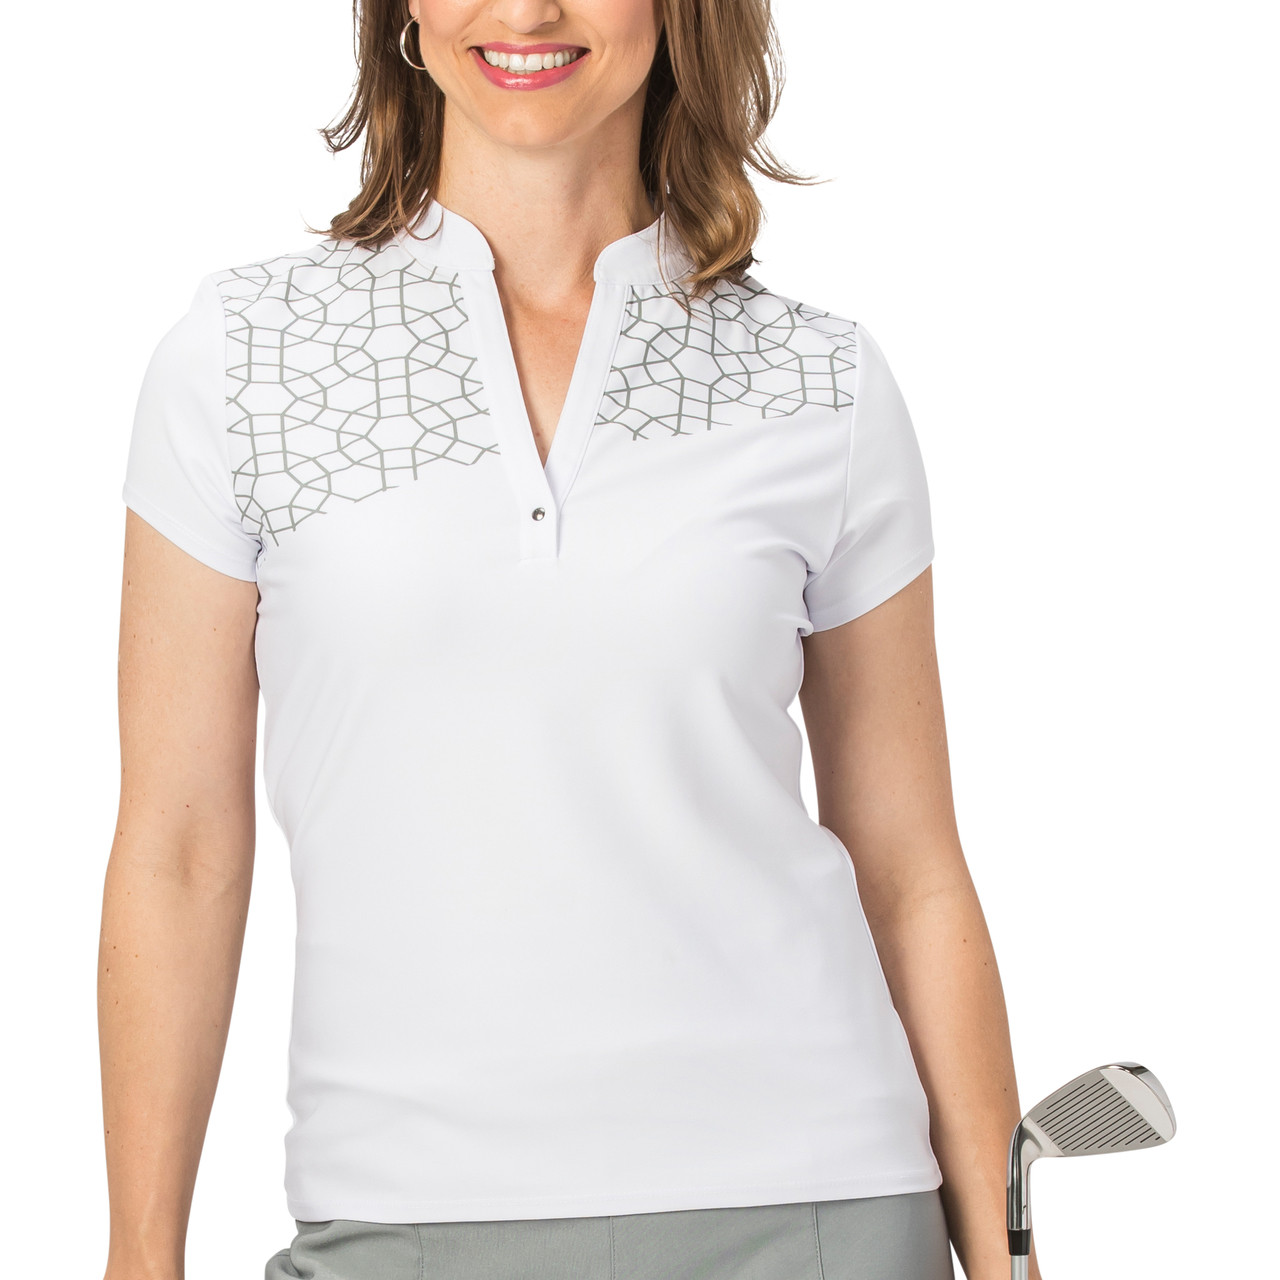 dc1bc24a Nancy Lopez Legacy Short Sleeve Polo - Silver | Golf4Her